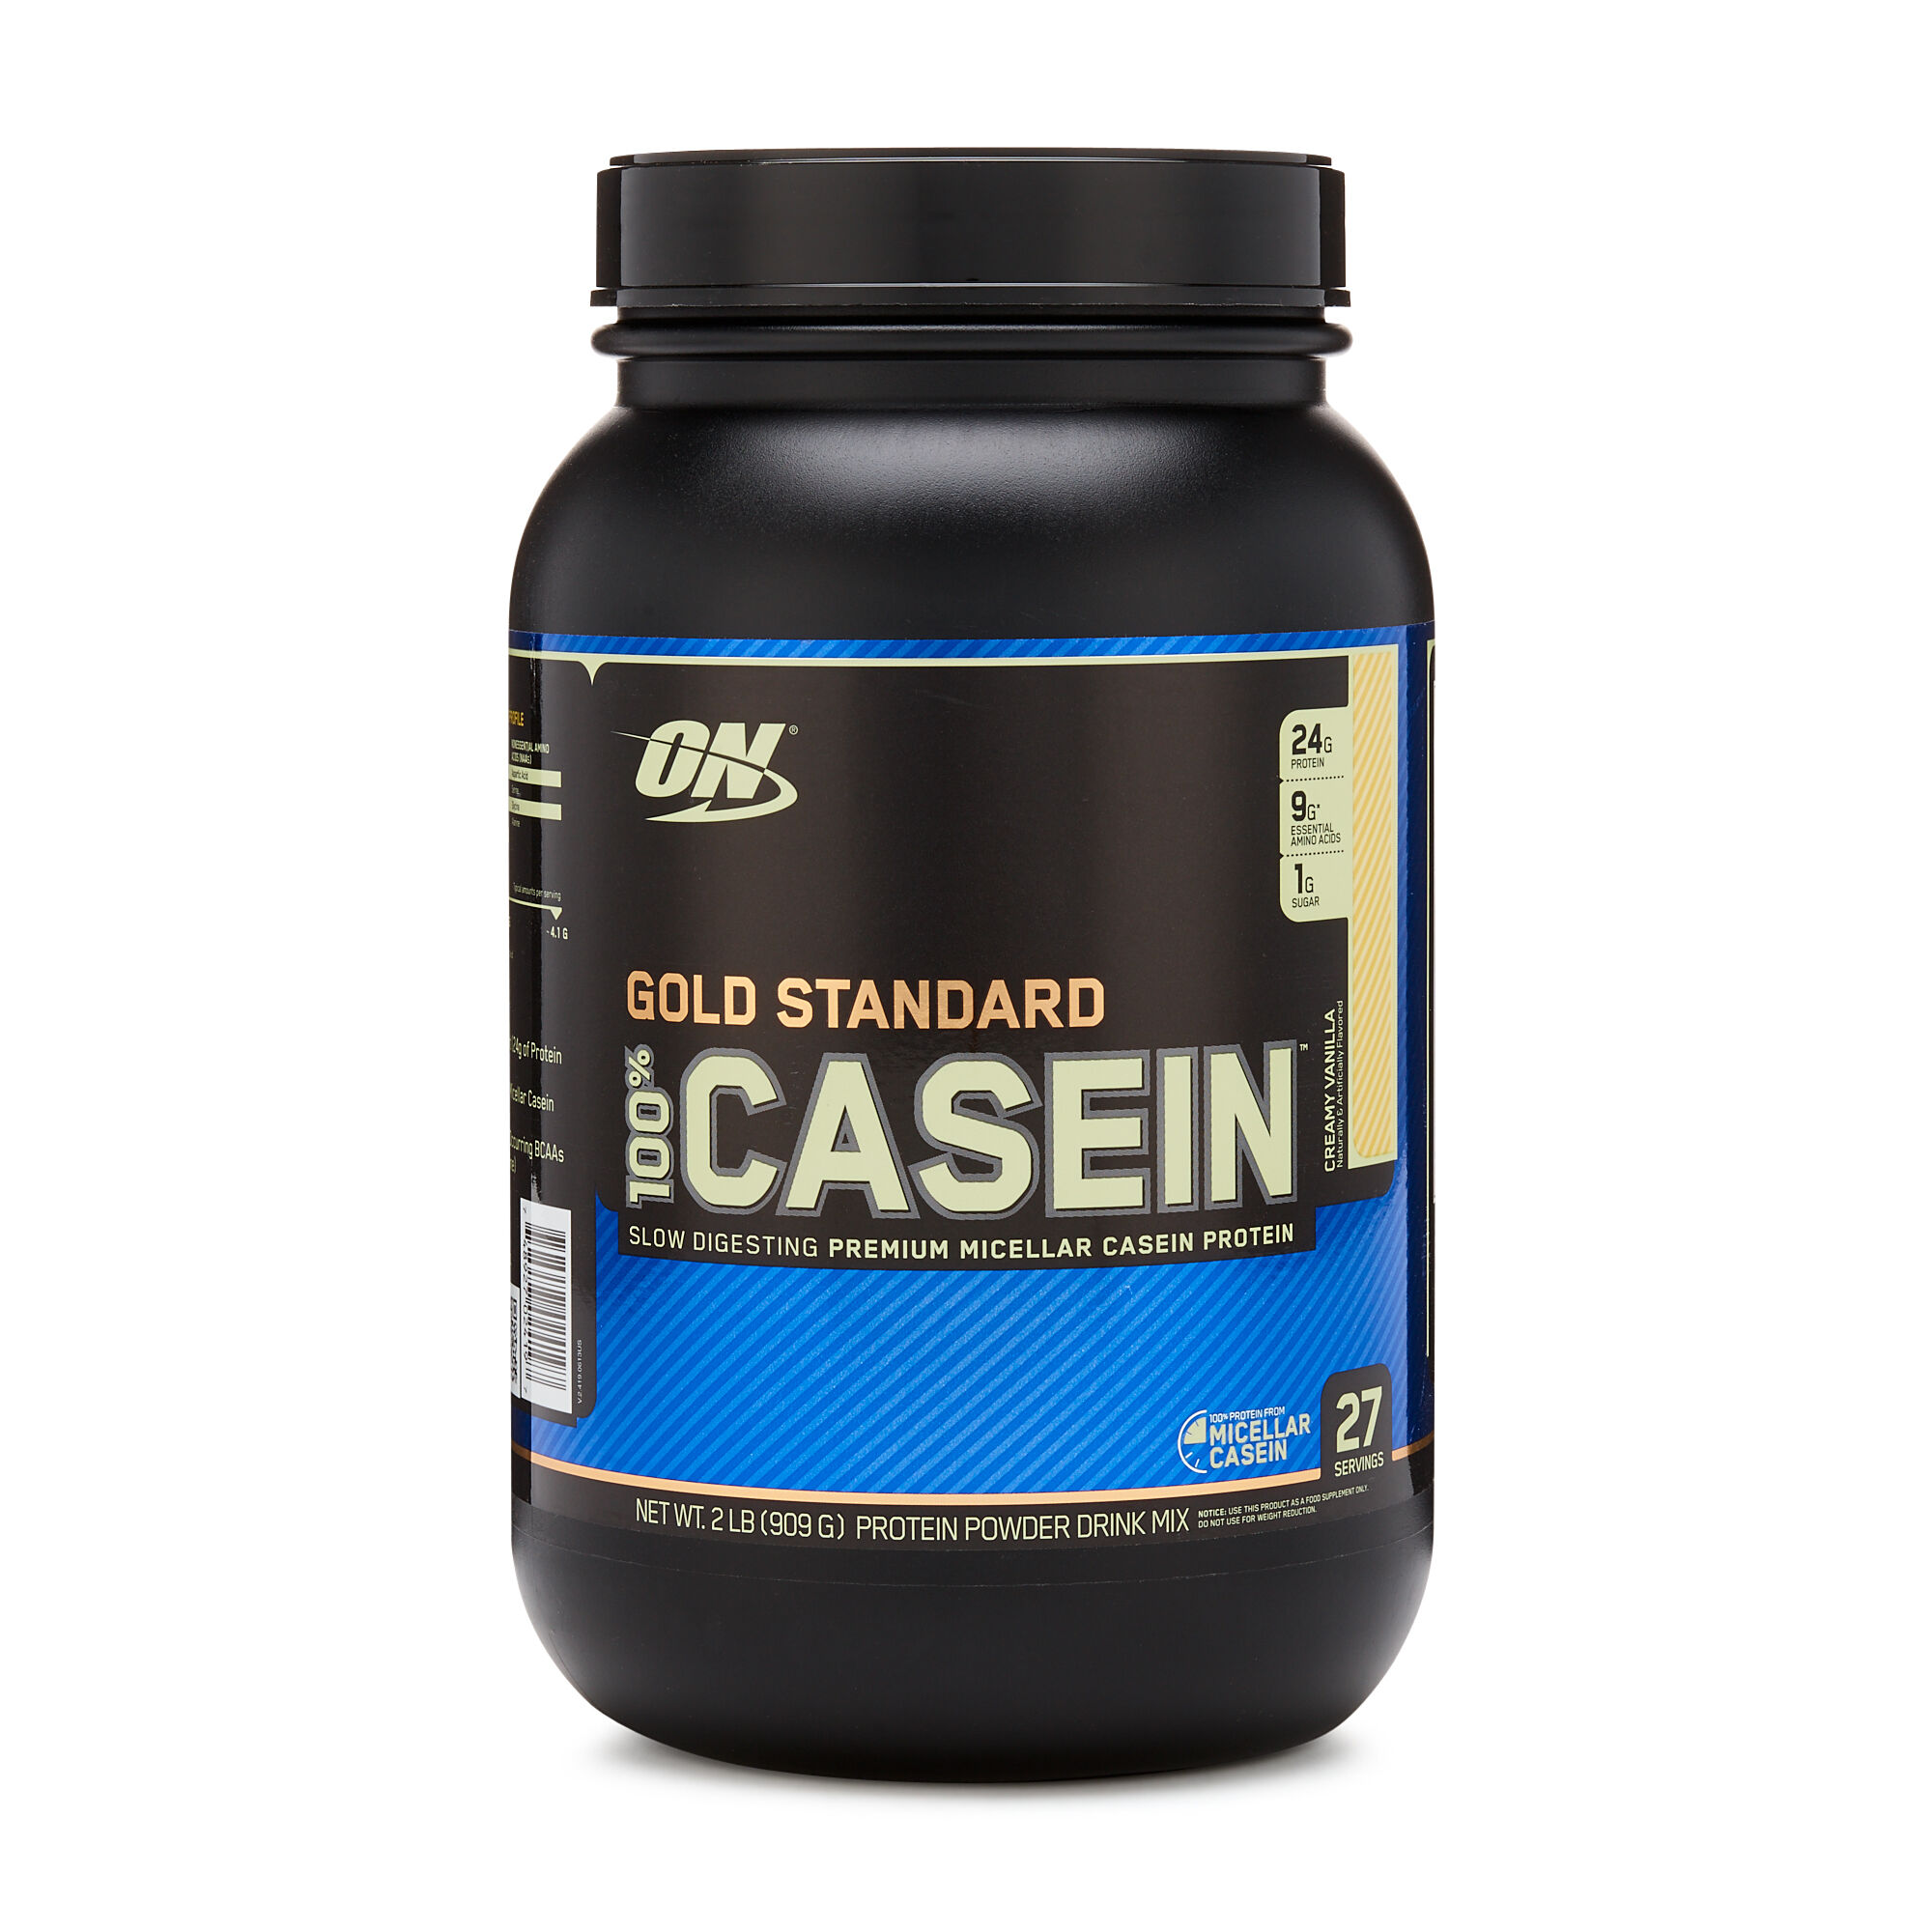 Casein: what it is Why casein protein is not recommended 73